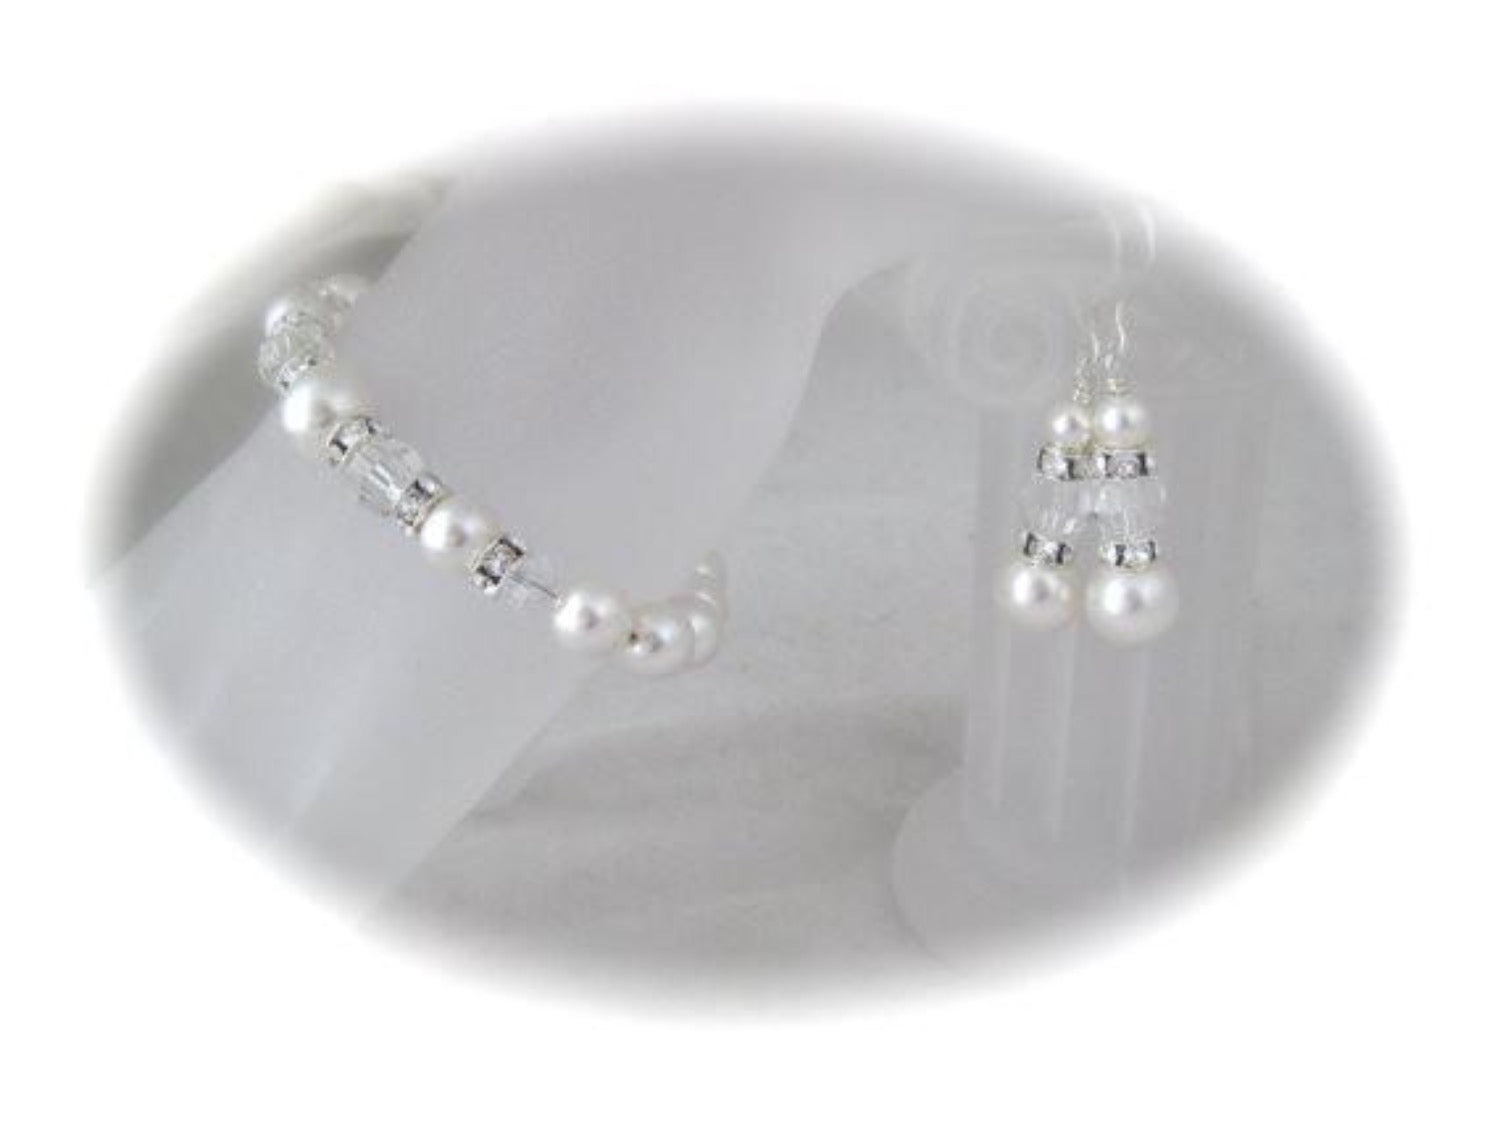 White pearl and crystal bracelet and earrings made with Swarovski elements - Clairesbridal - 3